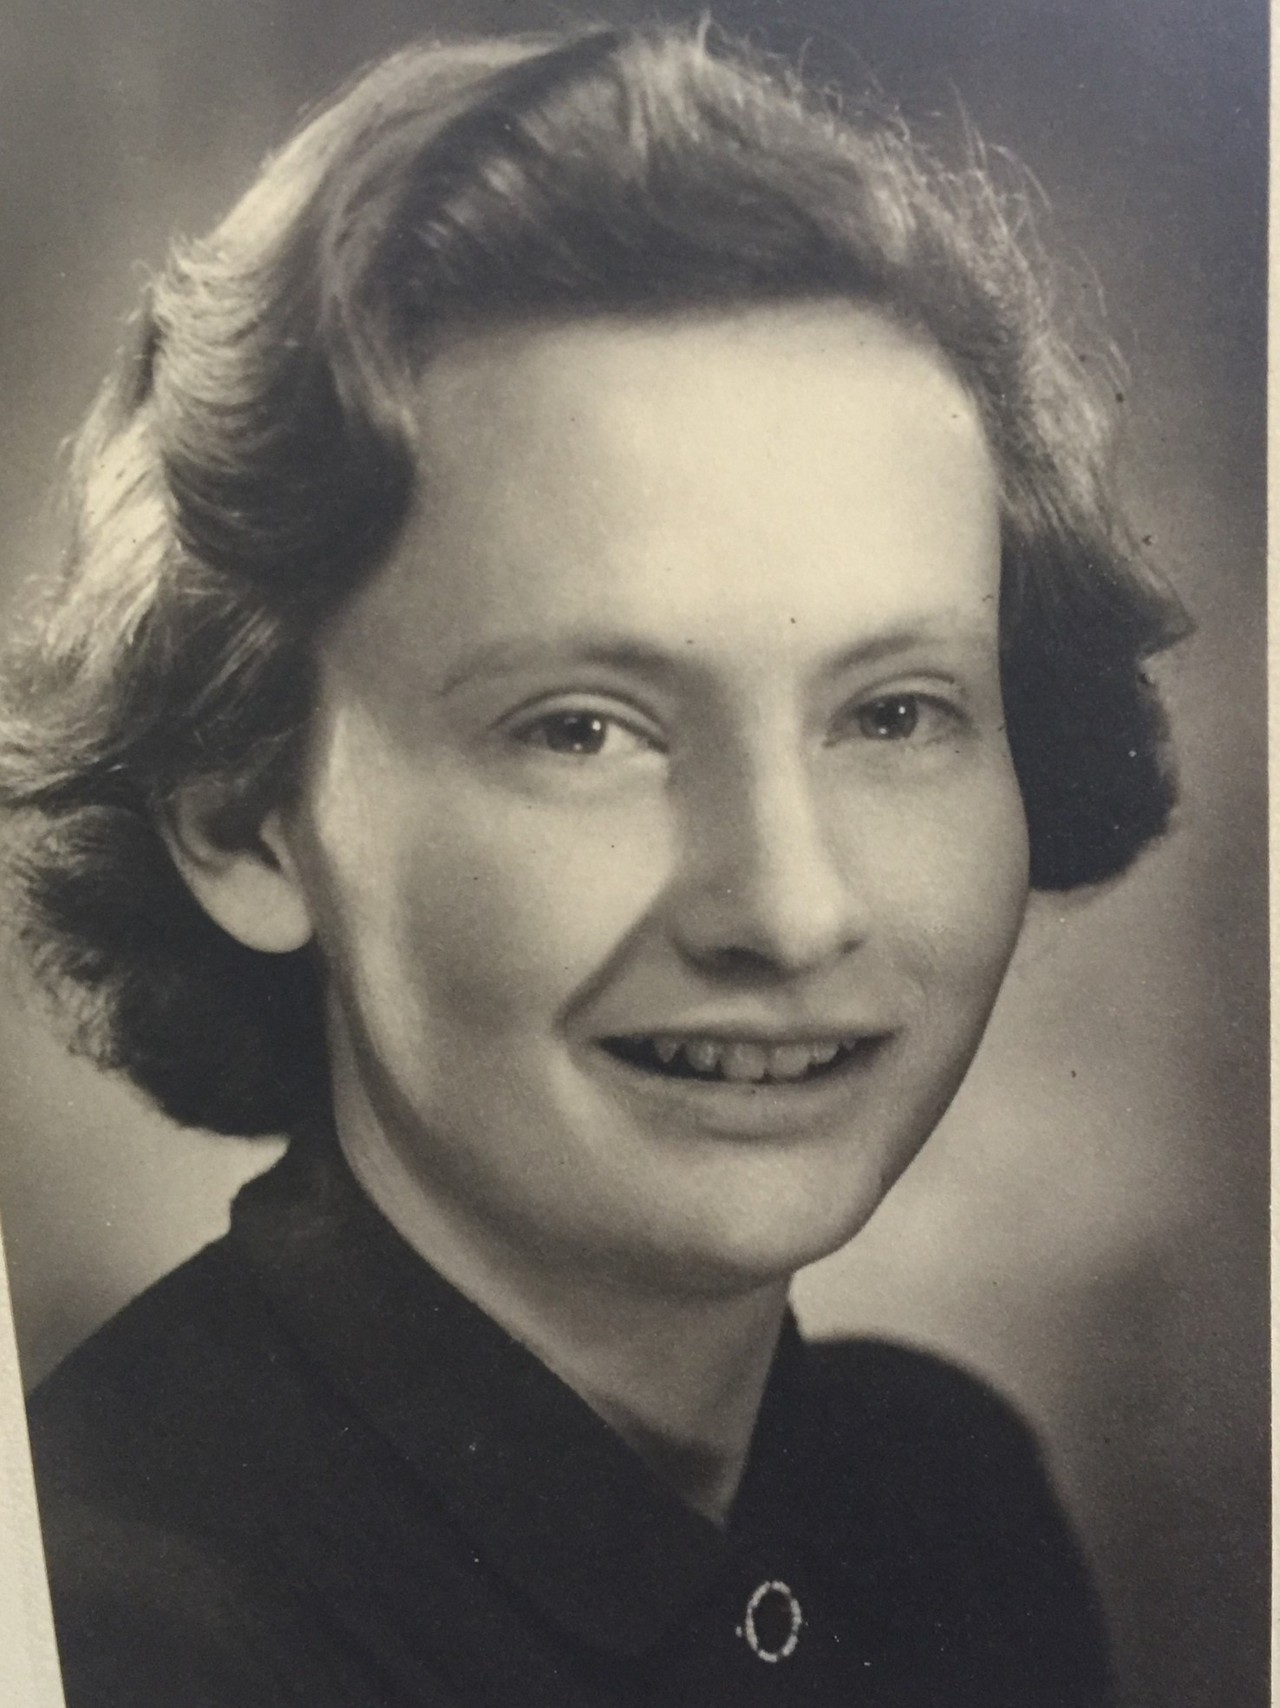 Young Angela Croome (Credit: Provided by John Gotley, used with permission from Angela Croome's family)